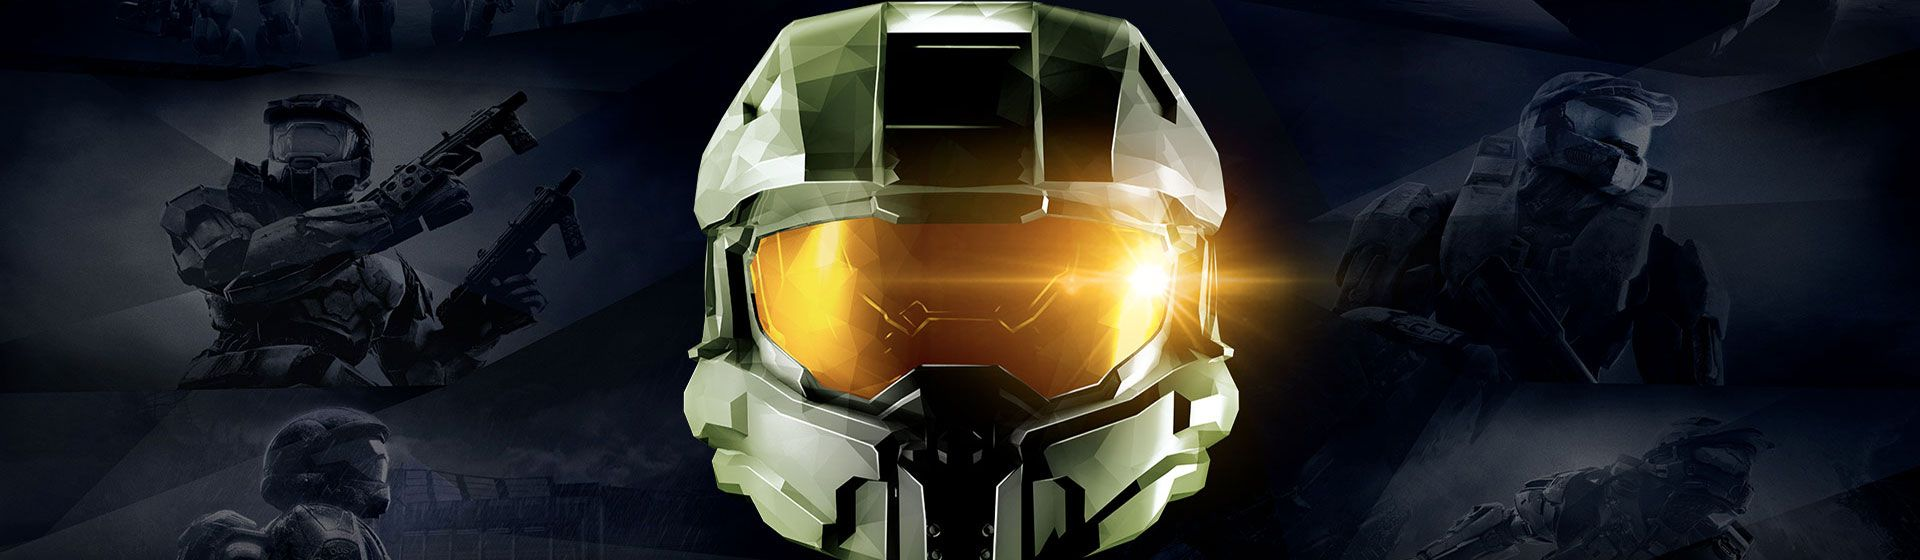 Halo: The Master Chief Collection roda em 4K e 120 FPS no Xbox Series X